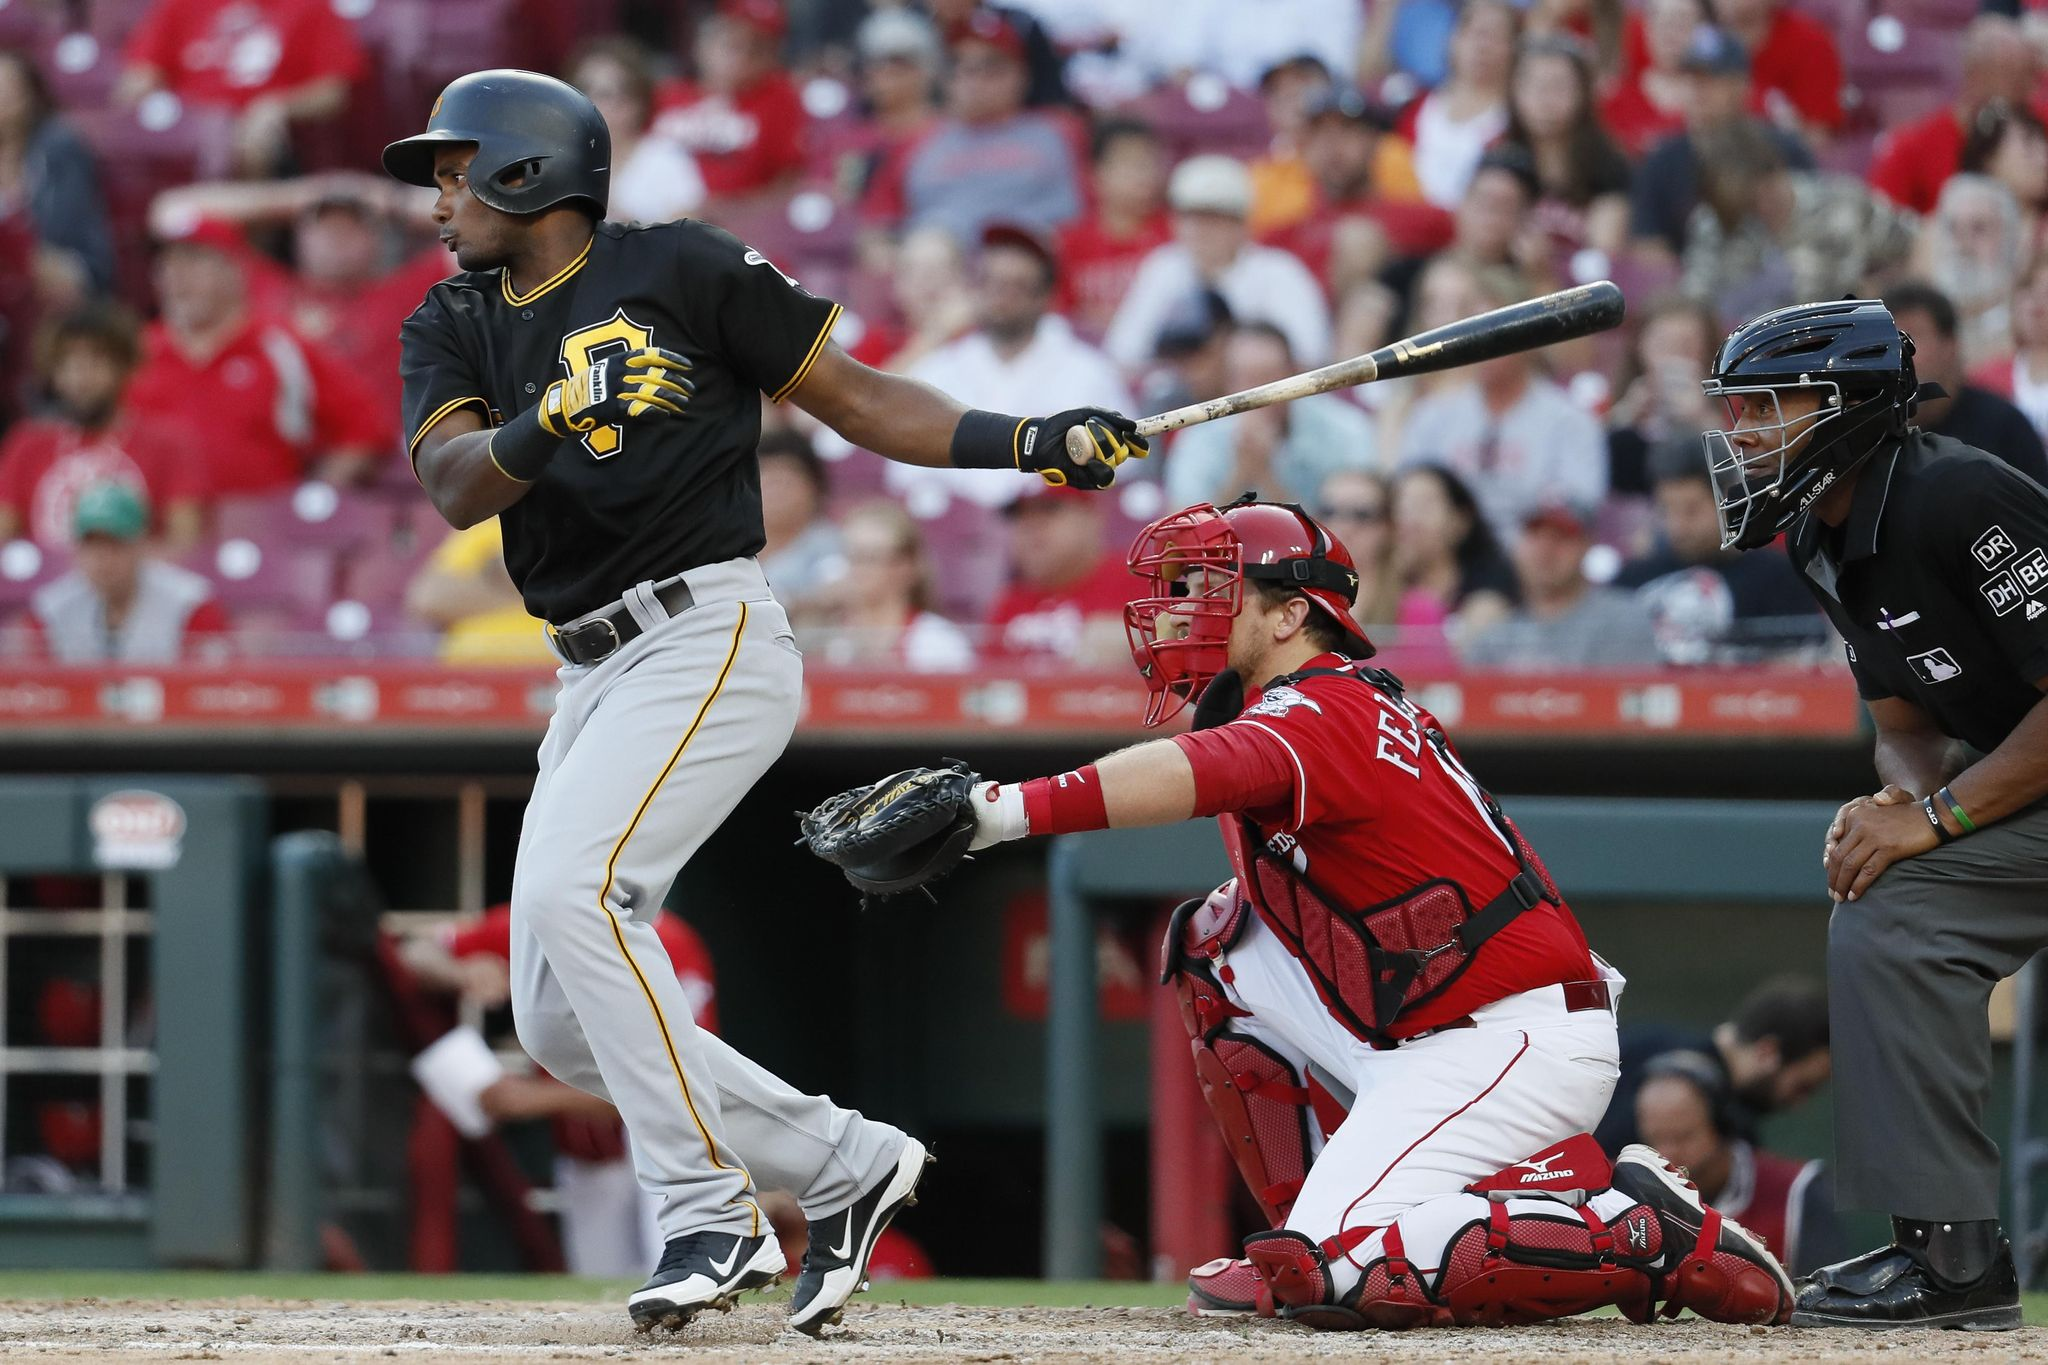 Pirates_reds_baseball_44335_s2048x1365